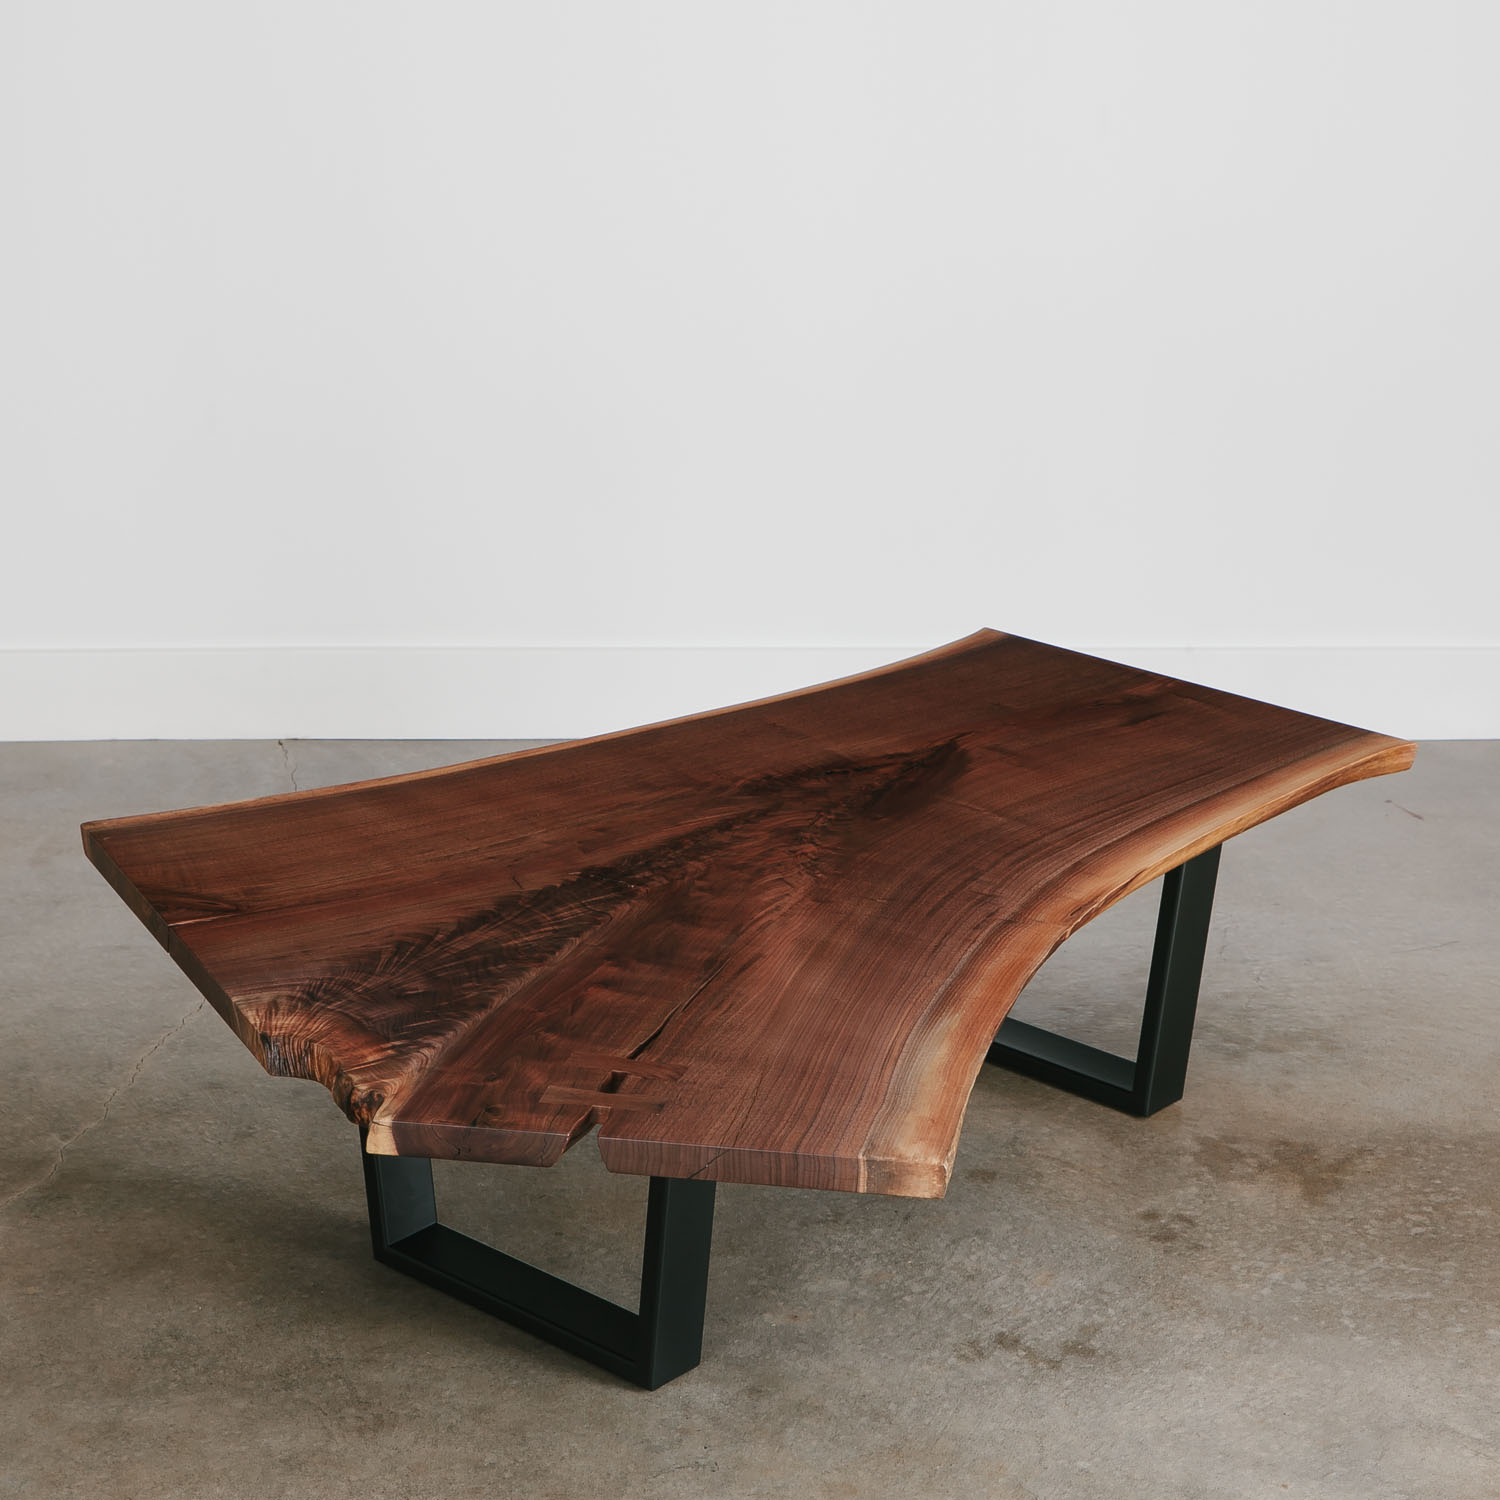 Natural walnut single slab live edge coffee table